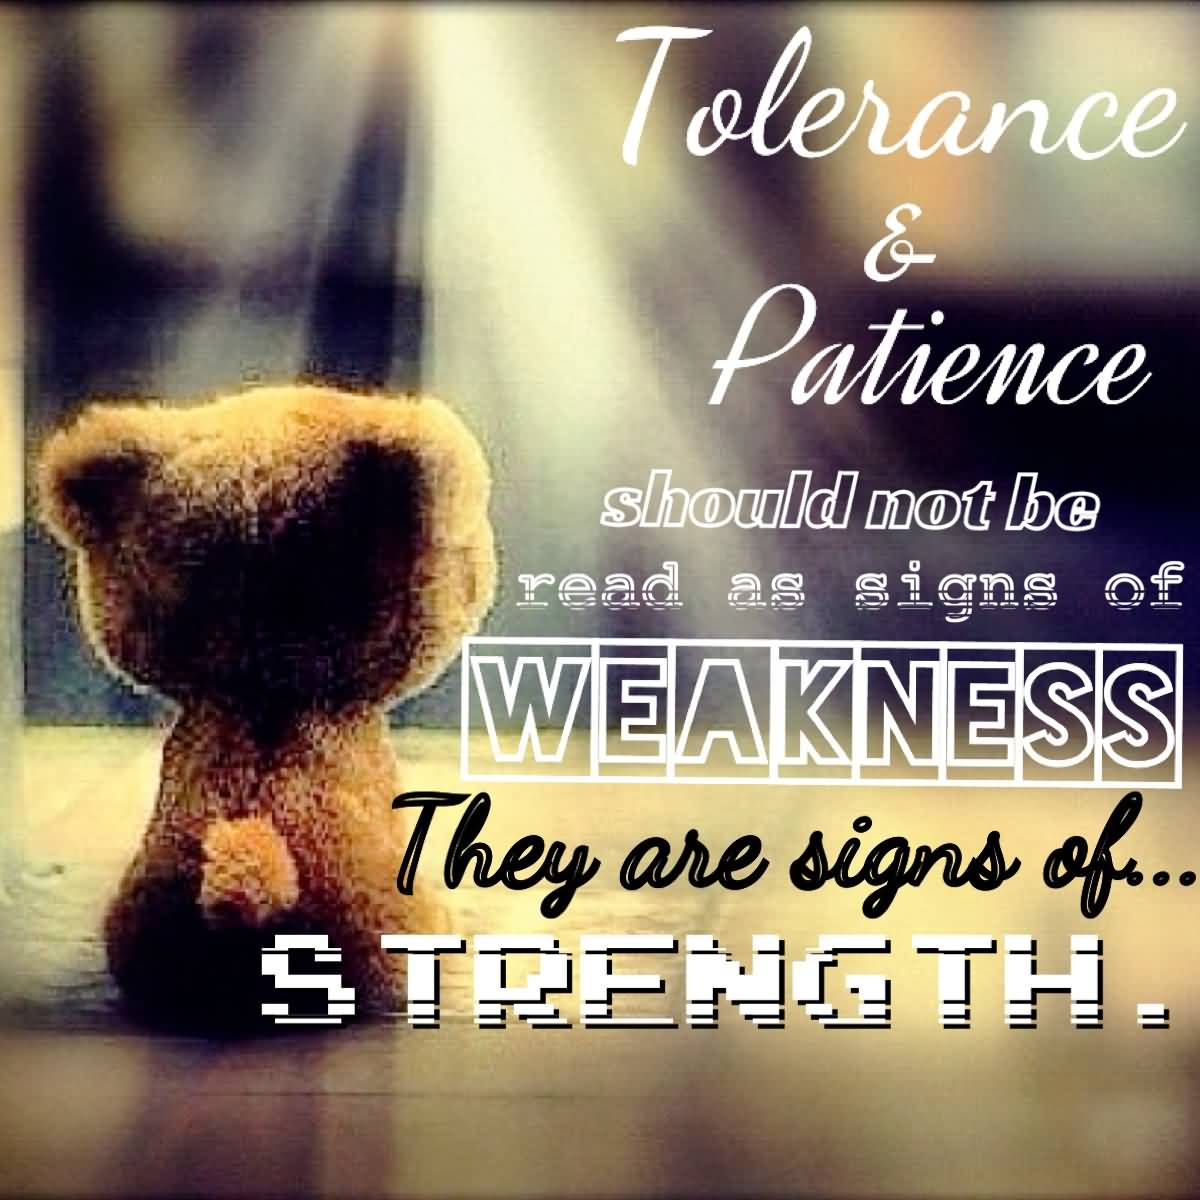 Patience Quotes tolerance patience should not be read as signs of weakness they are sihns